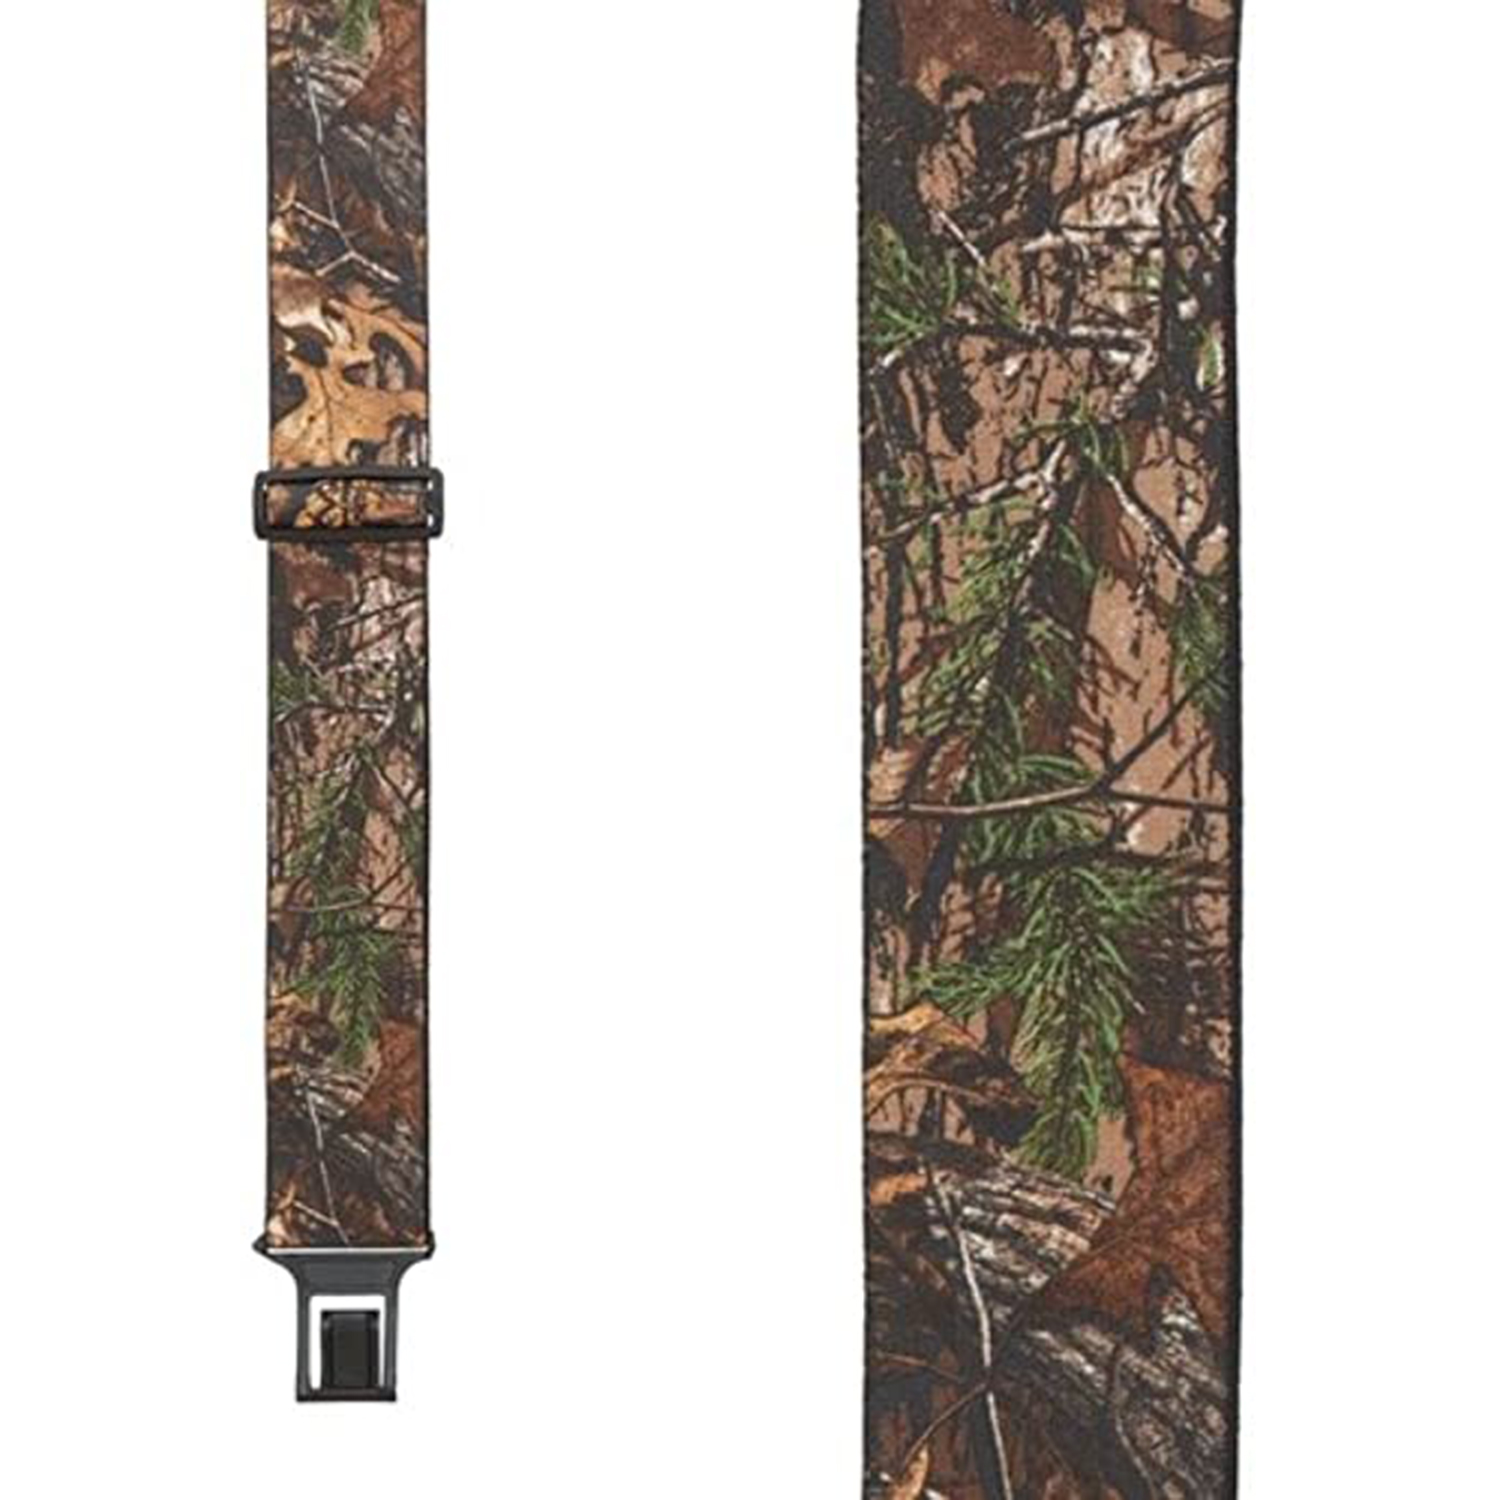 miniature 27 - Perry-Hook-On-Belt-Suspenders-The-Original-All-Colors-Regular-and-Big-amp-Tall